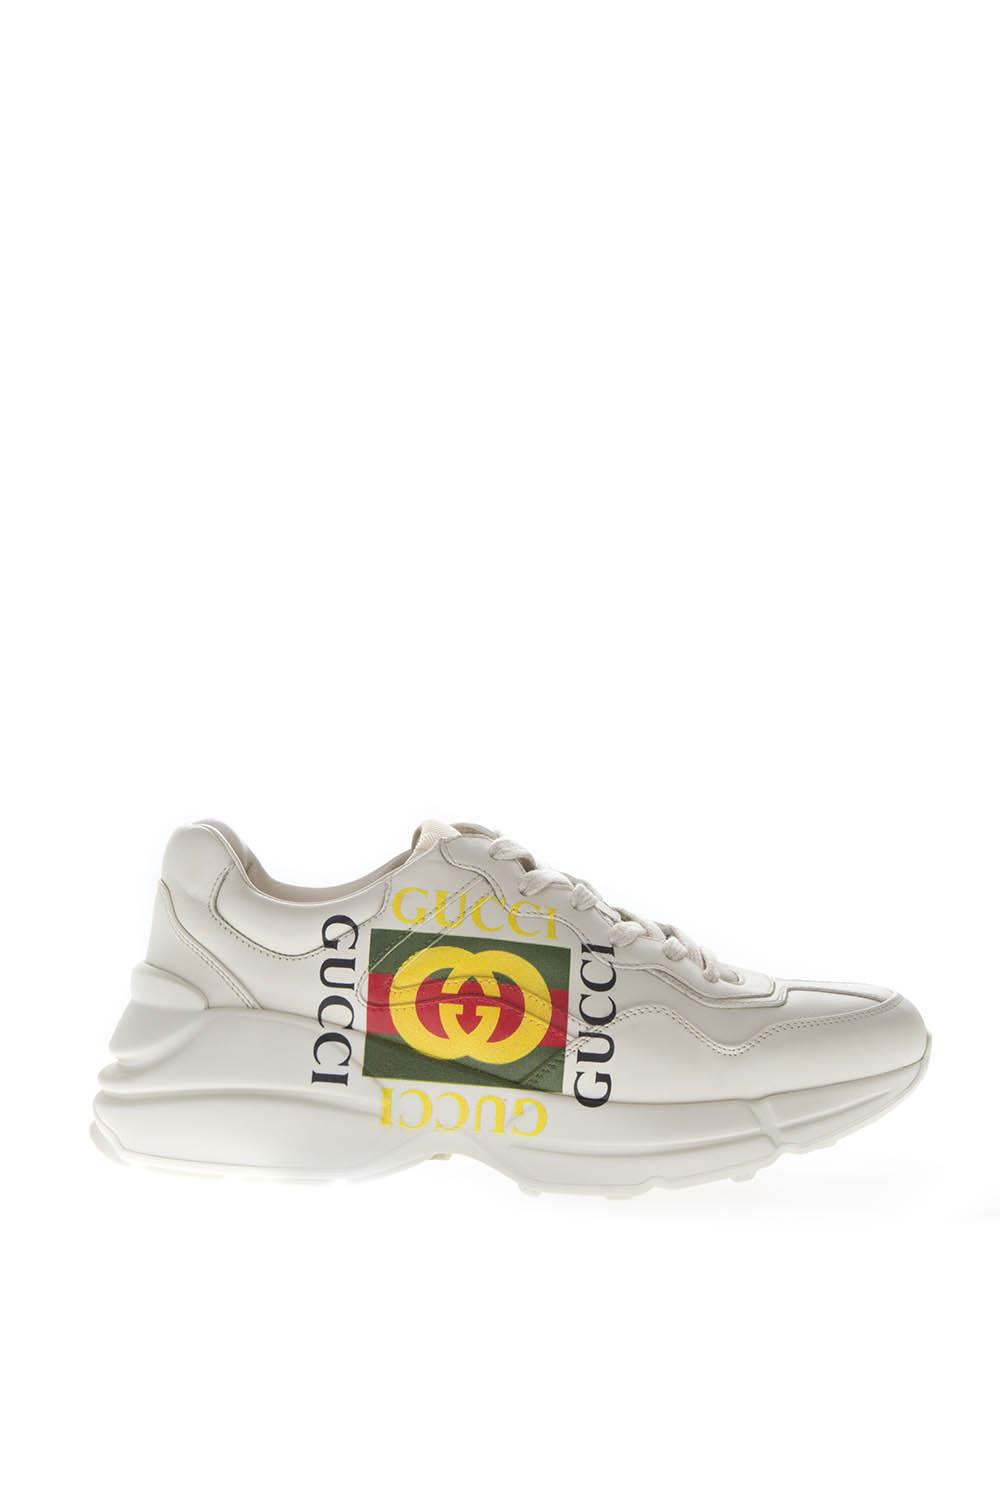 27850c907 RHYTON IVORY LEATHER LOGO SNEAKERS SS 2019 - GUCCI - Boutique Galiano